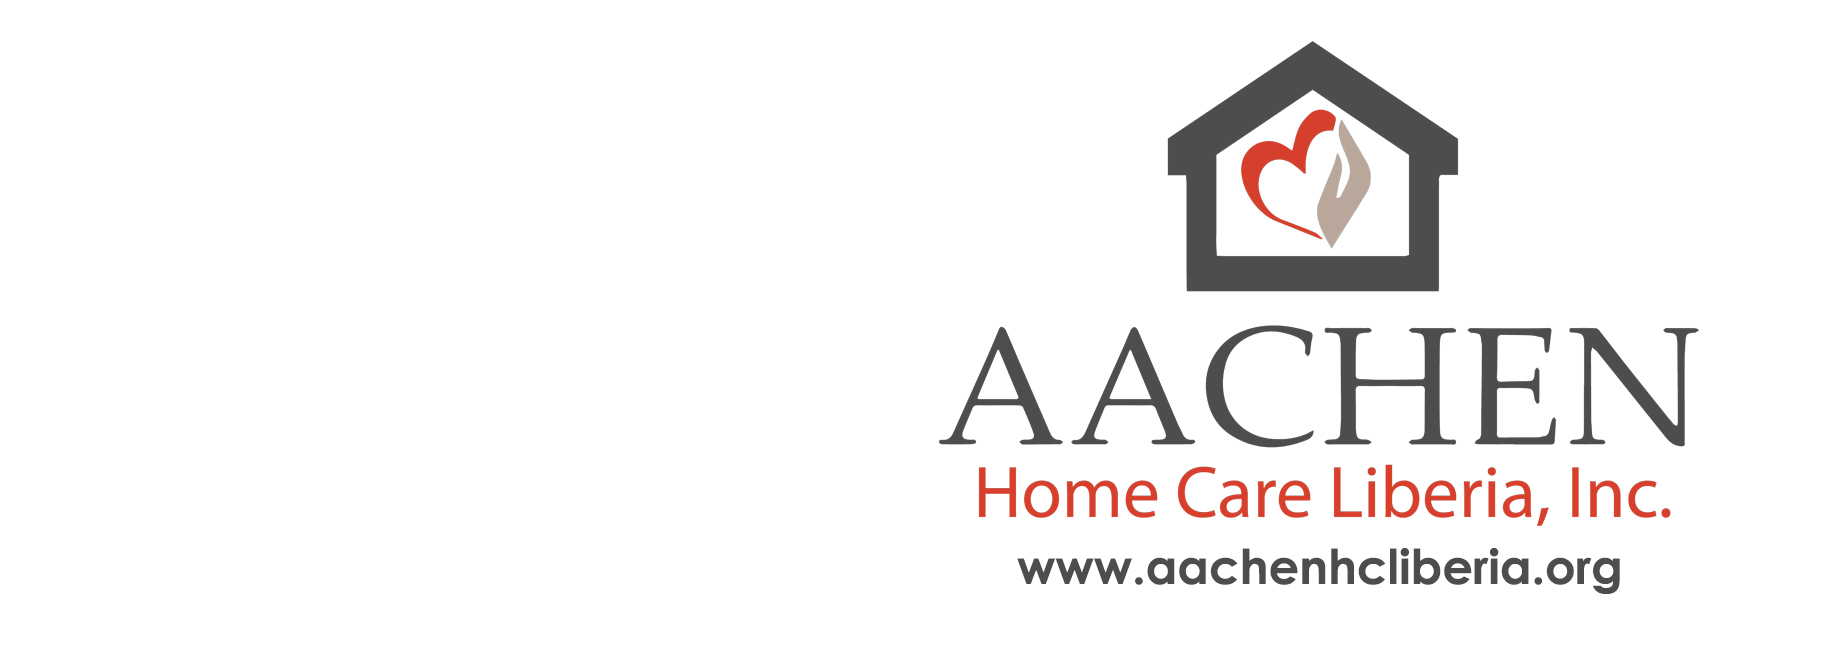 Visit AACHEN Home Care in Liberia!